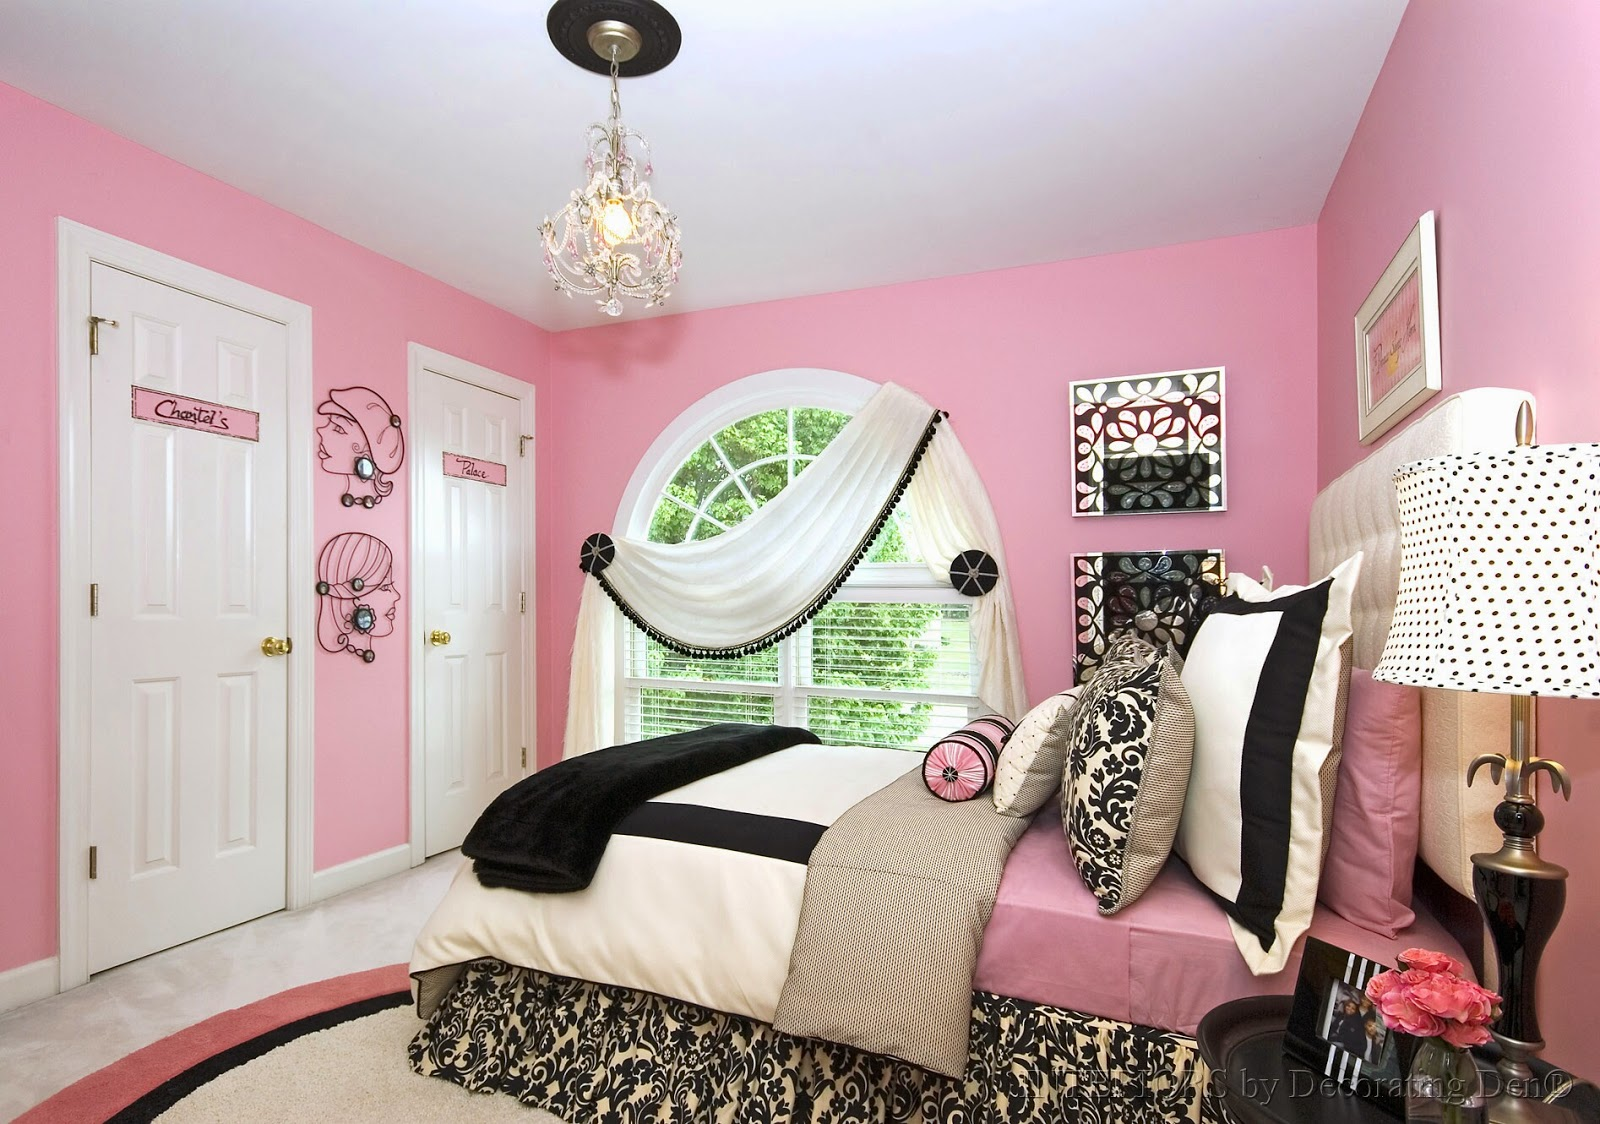 ... #6 Trendy Bedroom Interior Pink Purple Teenage Girl Design Trendy Bedroom  Interior Pink Purple Teenage ...